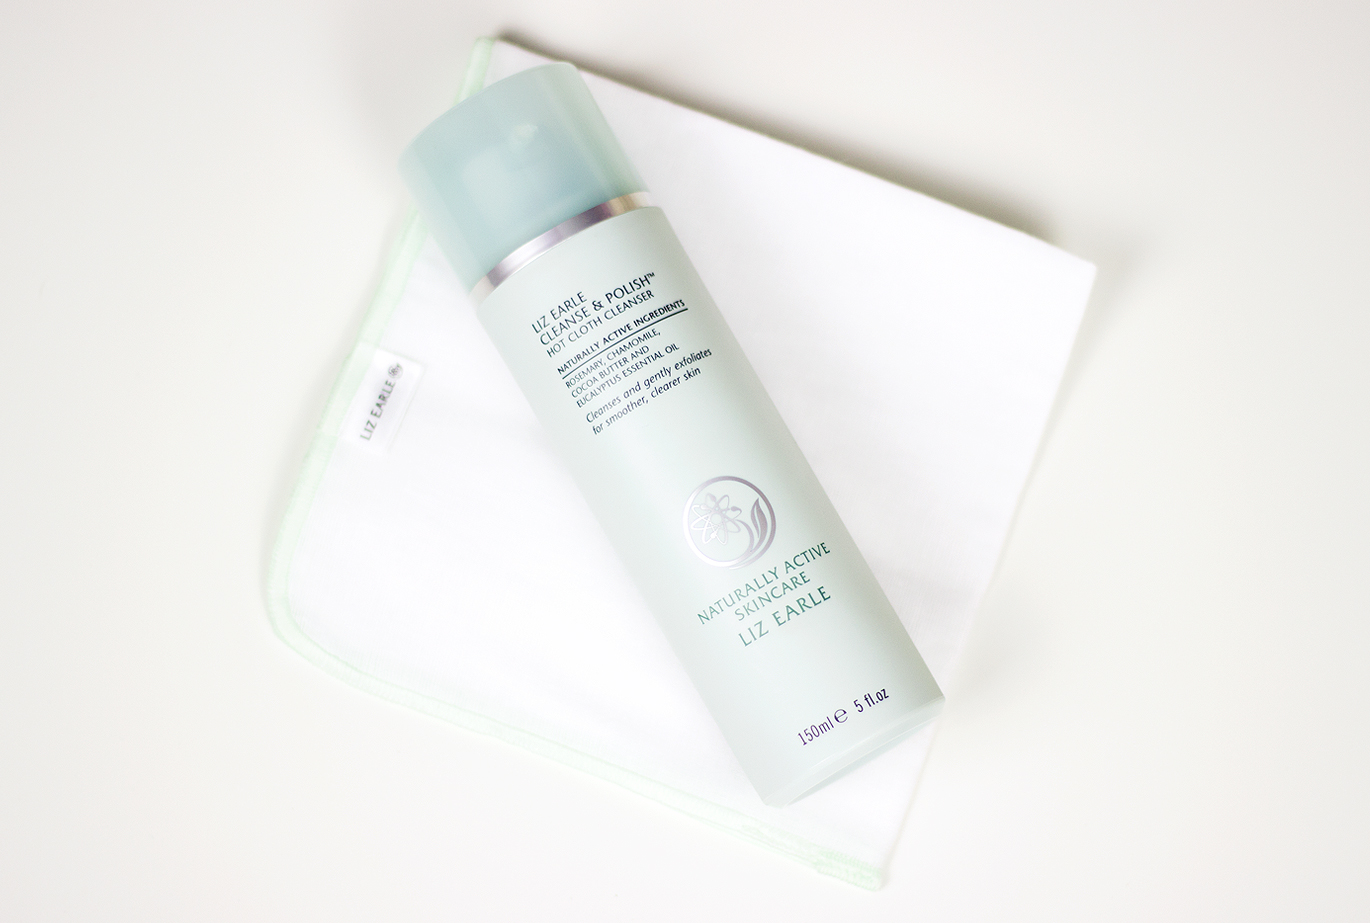 Liz Earle, Liz Earle Cleanse and Polish,  Liz Earle Cleanse and Polish Hot Cloth Cleanser, Liz Earle Cleanse and Polish Hot Cloth Cleanser blog review, Liz Earle Cleanse and Polish Hot Cloth Cleanser review